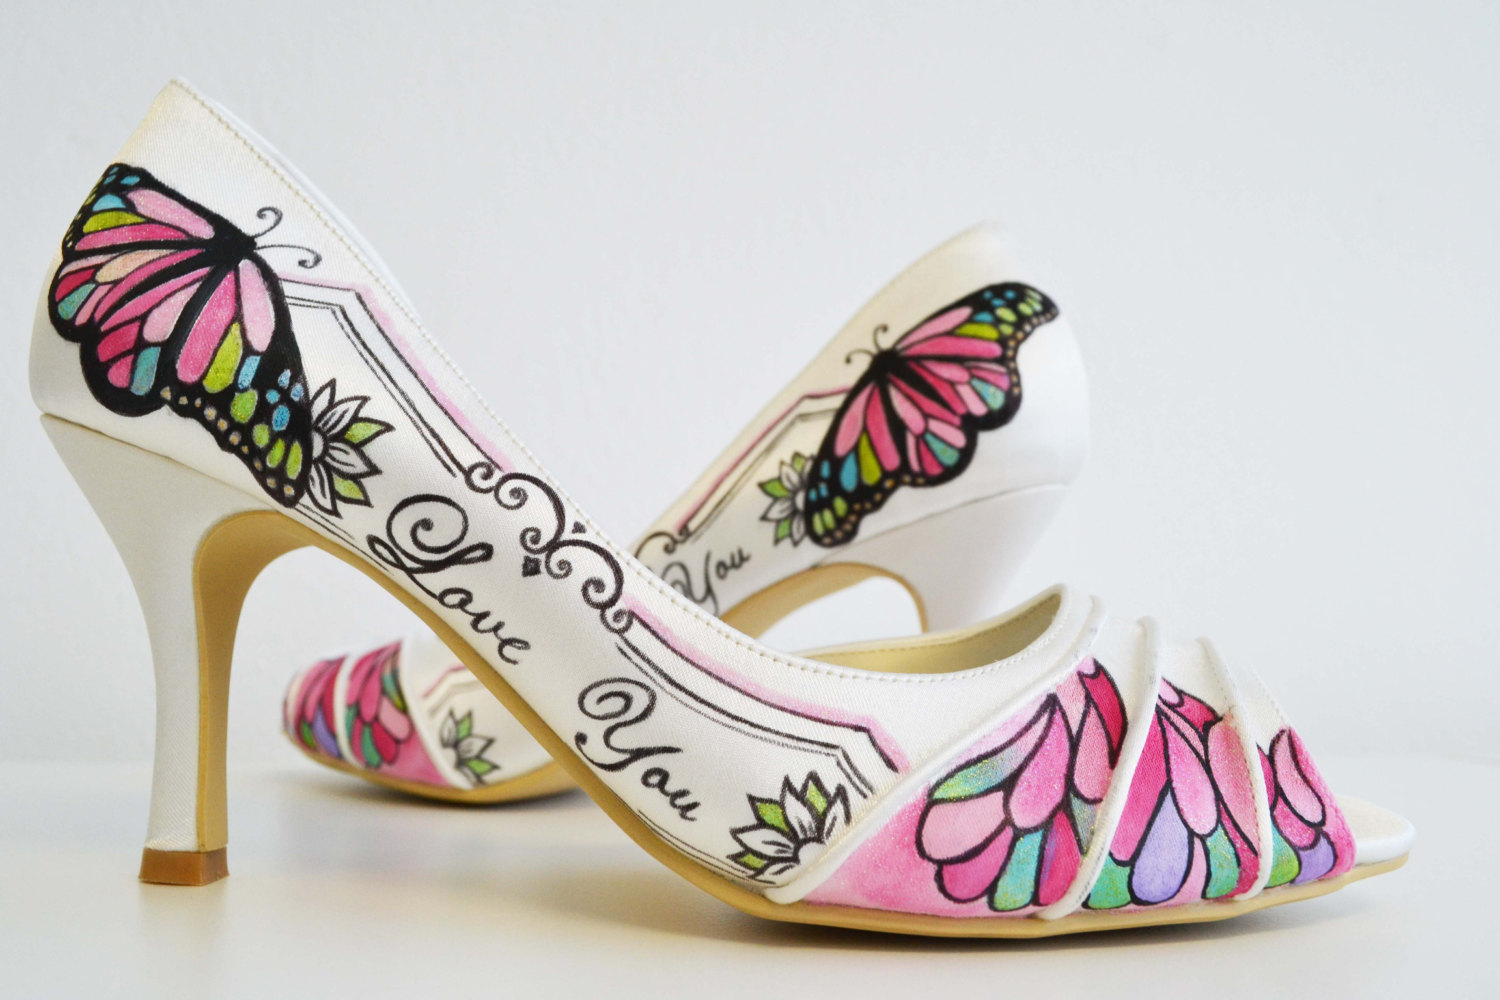 319adca4b37 Wedding Shoes - Bridal Shoes - Love you Shoes- Hand painted Heels- Pink  Shoes- Butterfly shoes